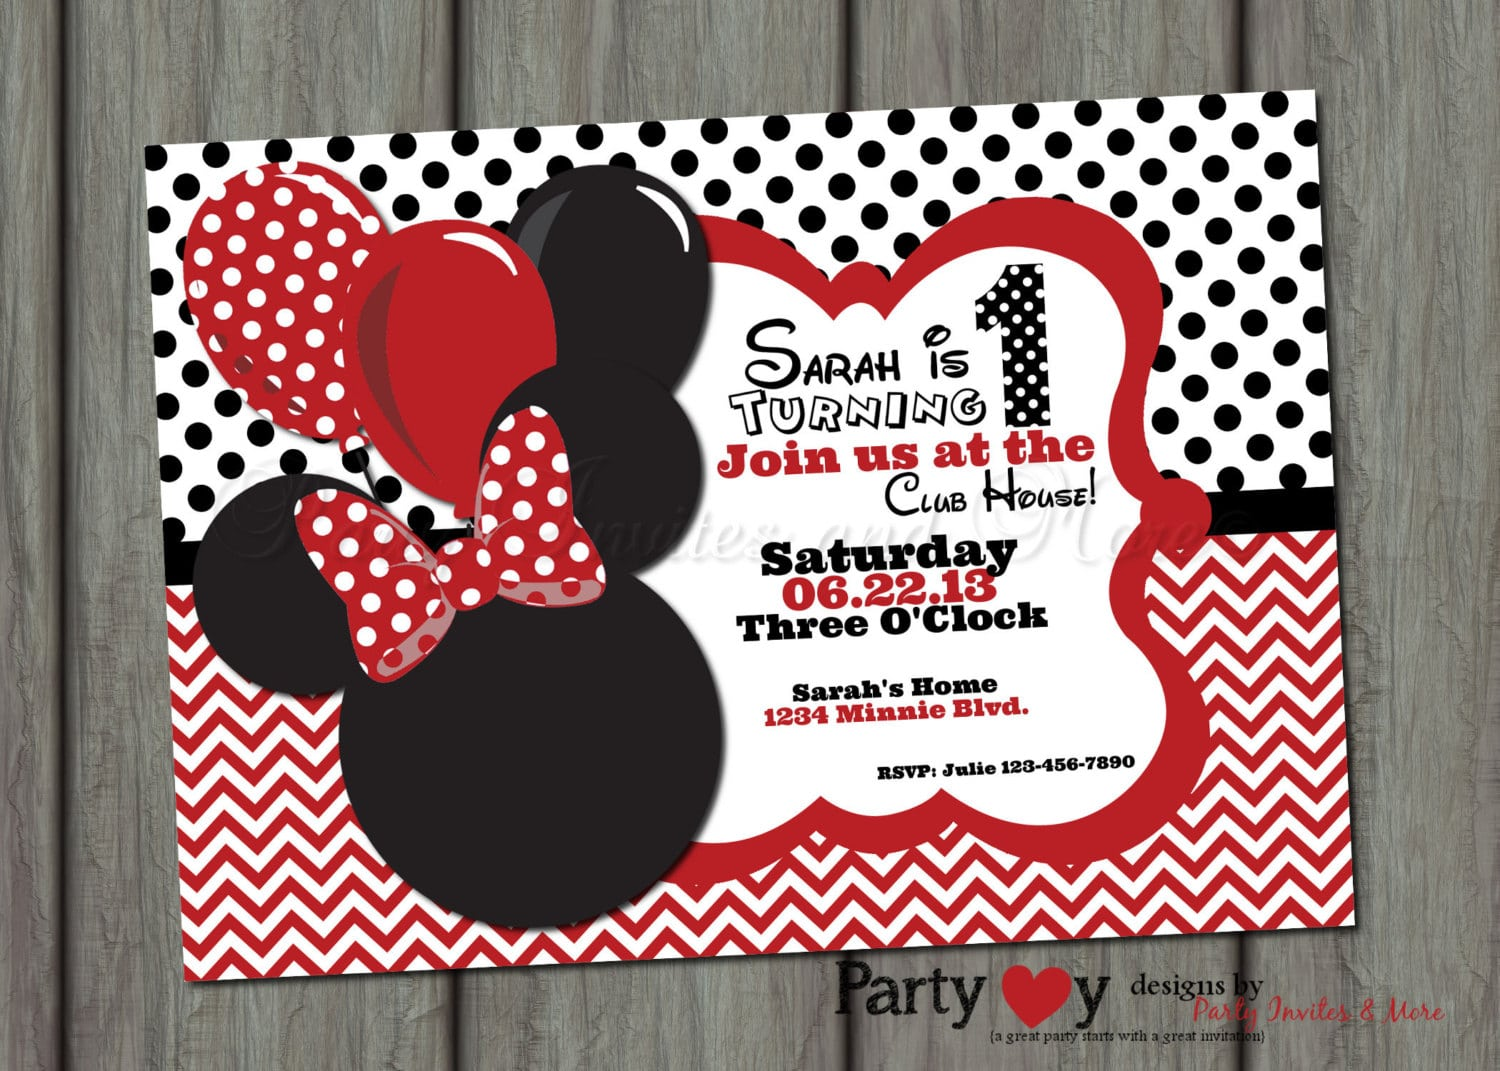 Exelent minnie mouse party invitations images invitations and modern minnie mouse party invitation mold resume ideas solutioingenieria Choice Image